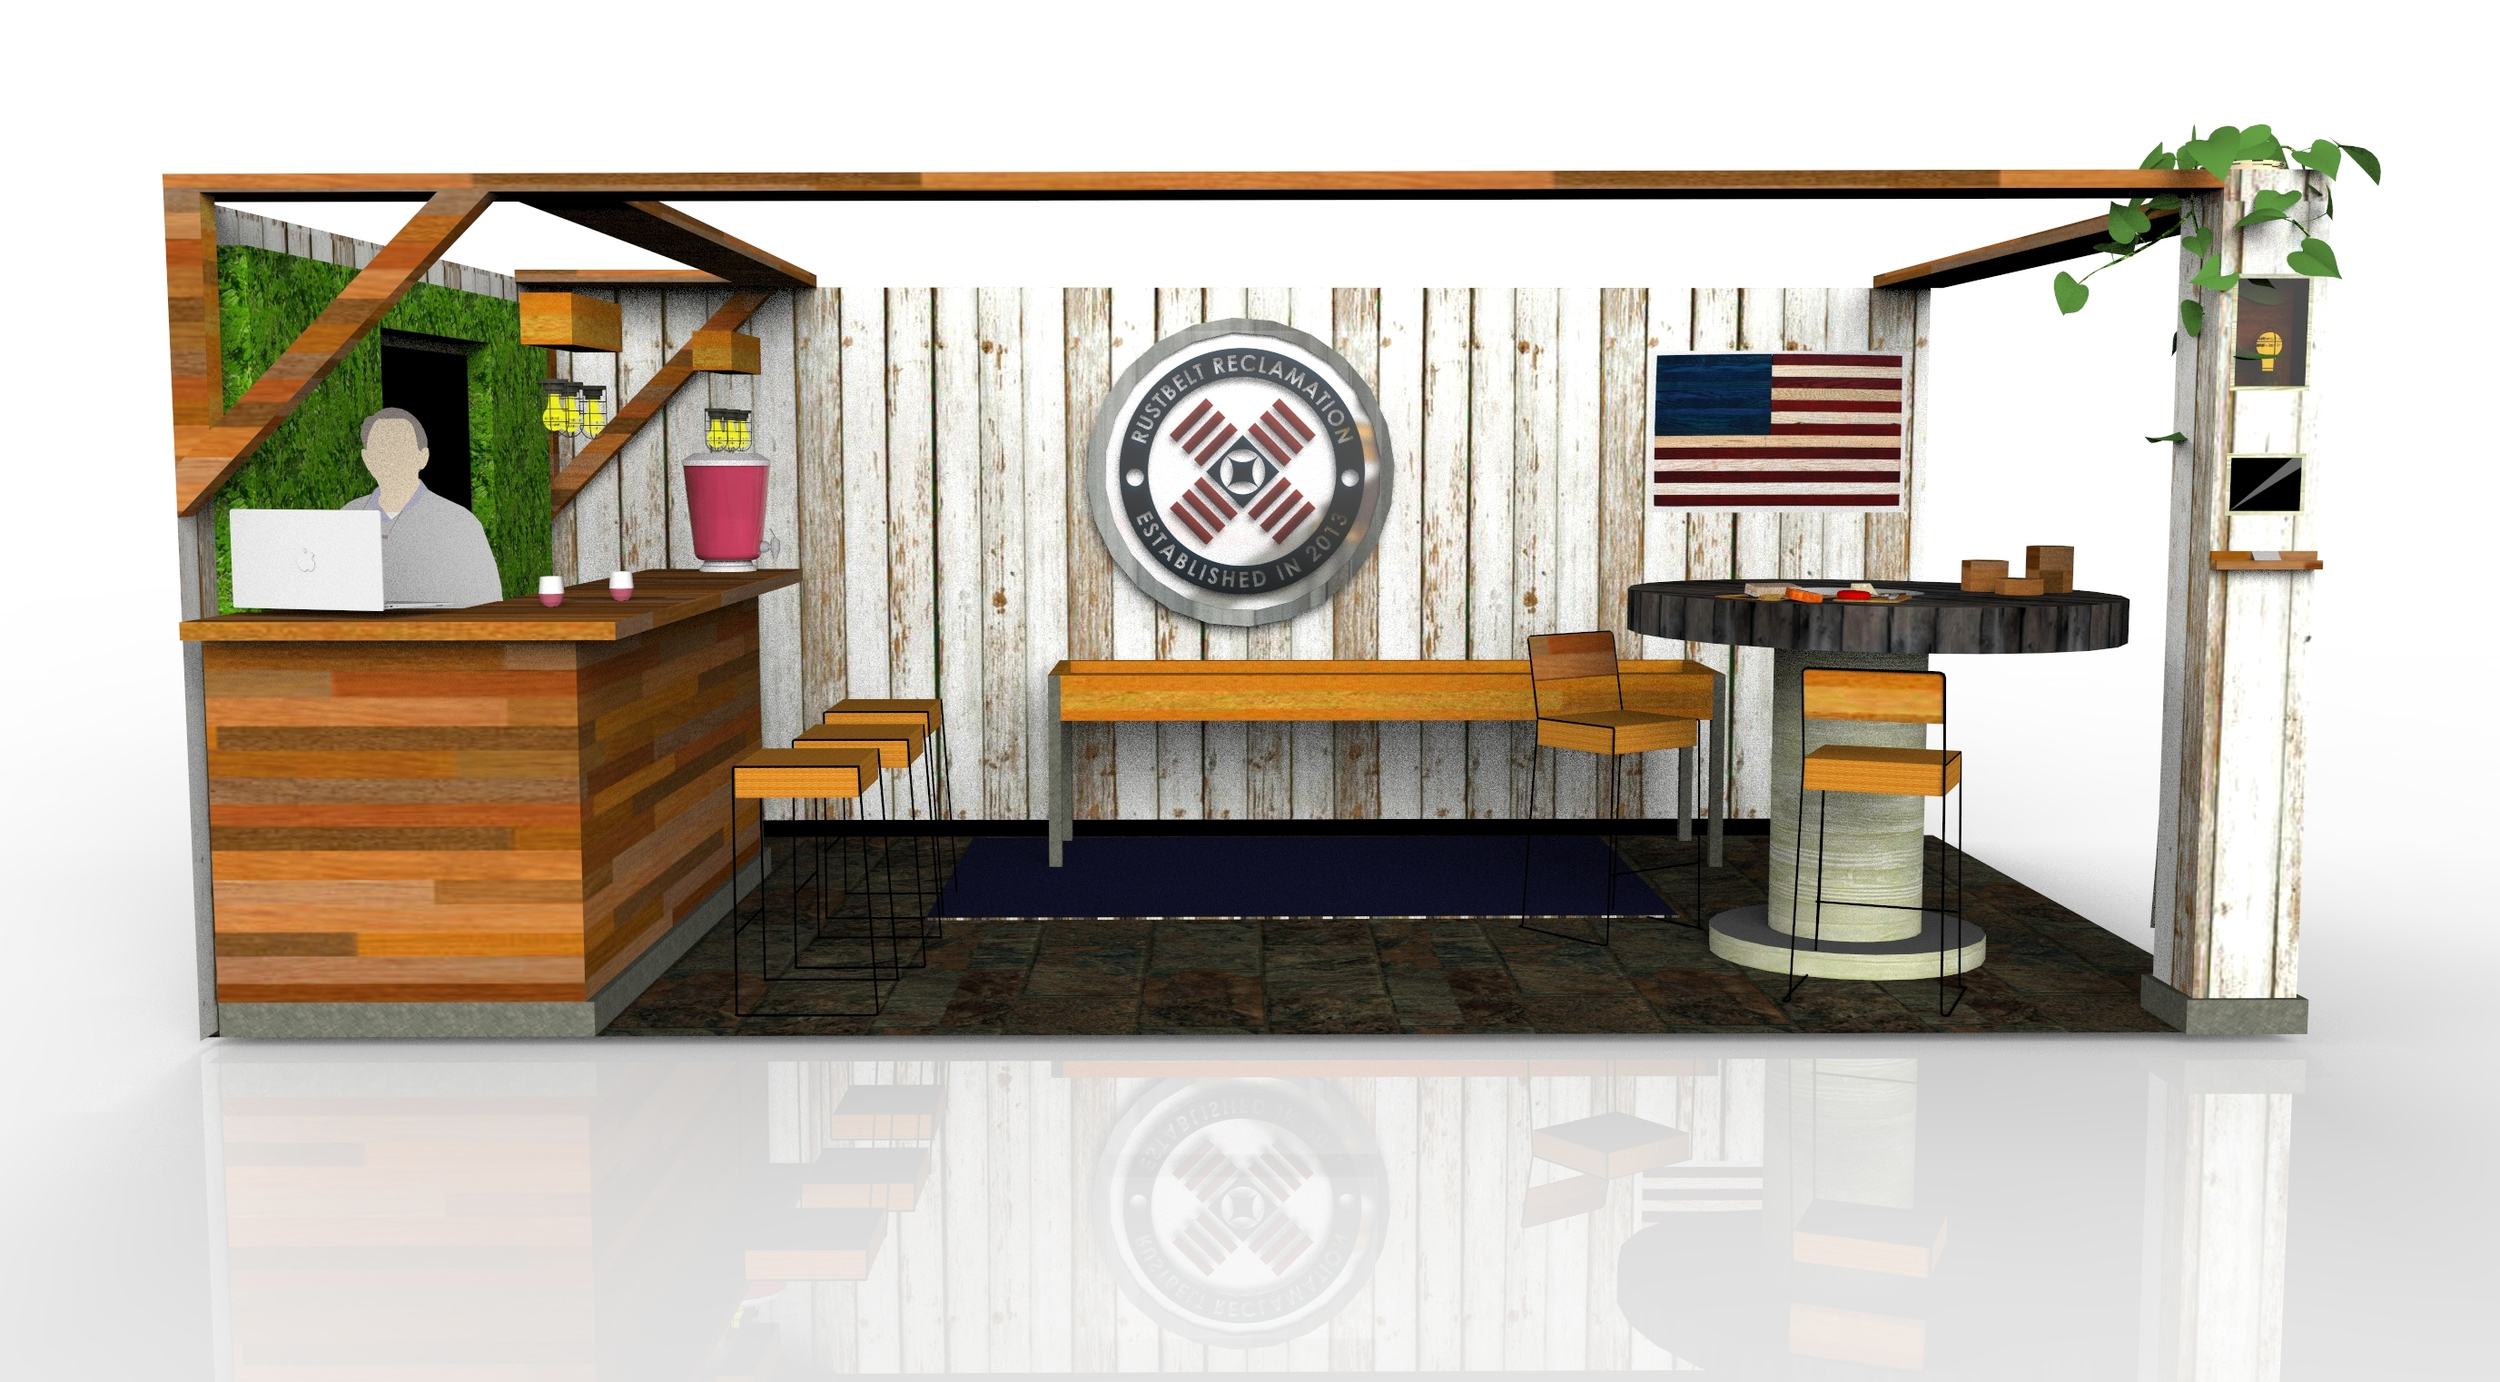 Trade Show Booth Render 2014.2.jpg